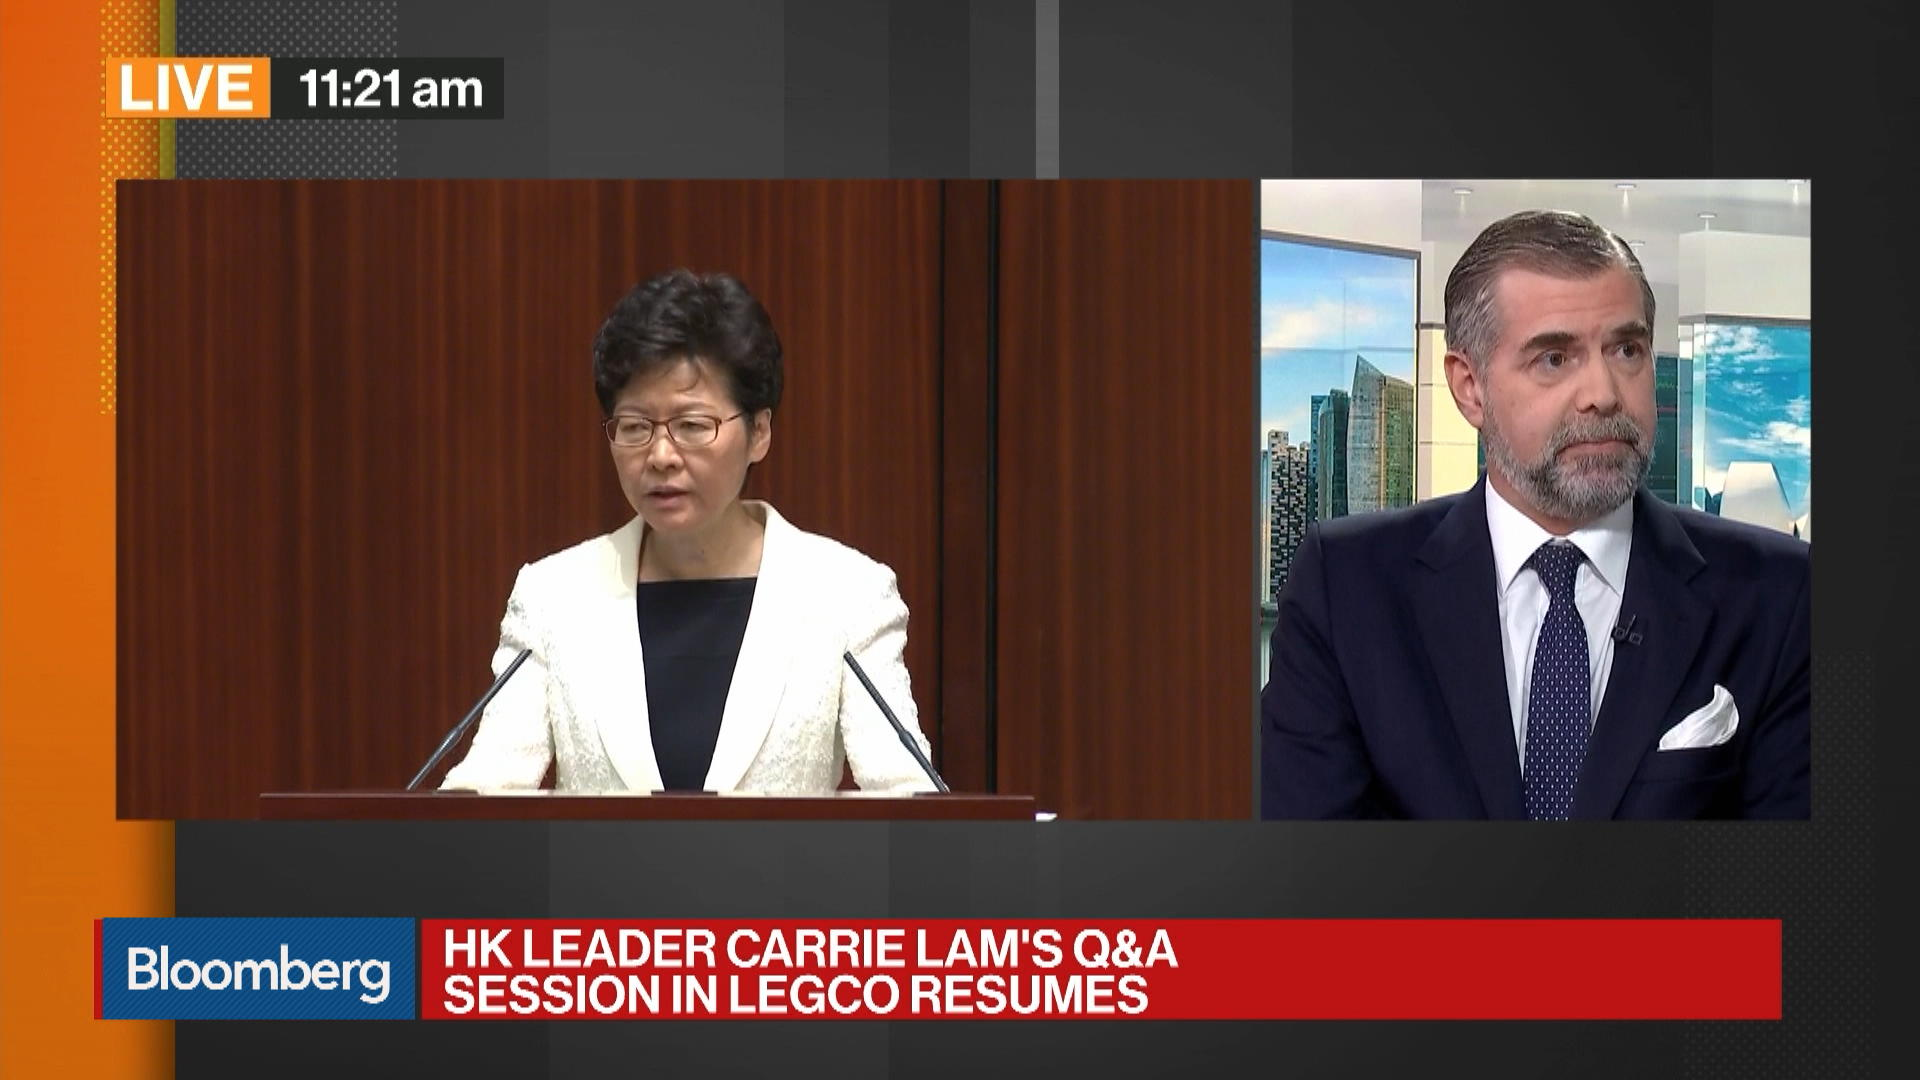 Bank Julius Baer Head of Asia Research Mark Matthews on U.S.-China Trade, HK Unrest, Recession Risk